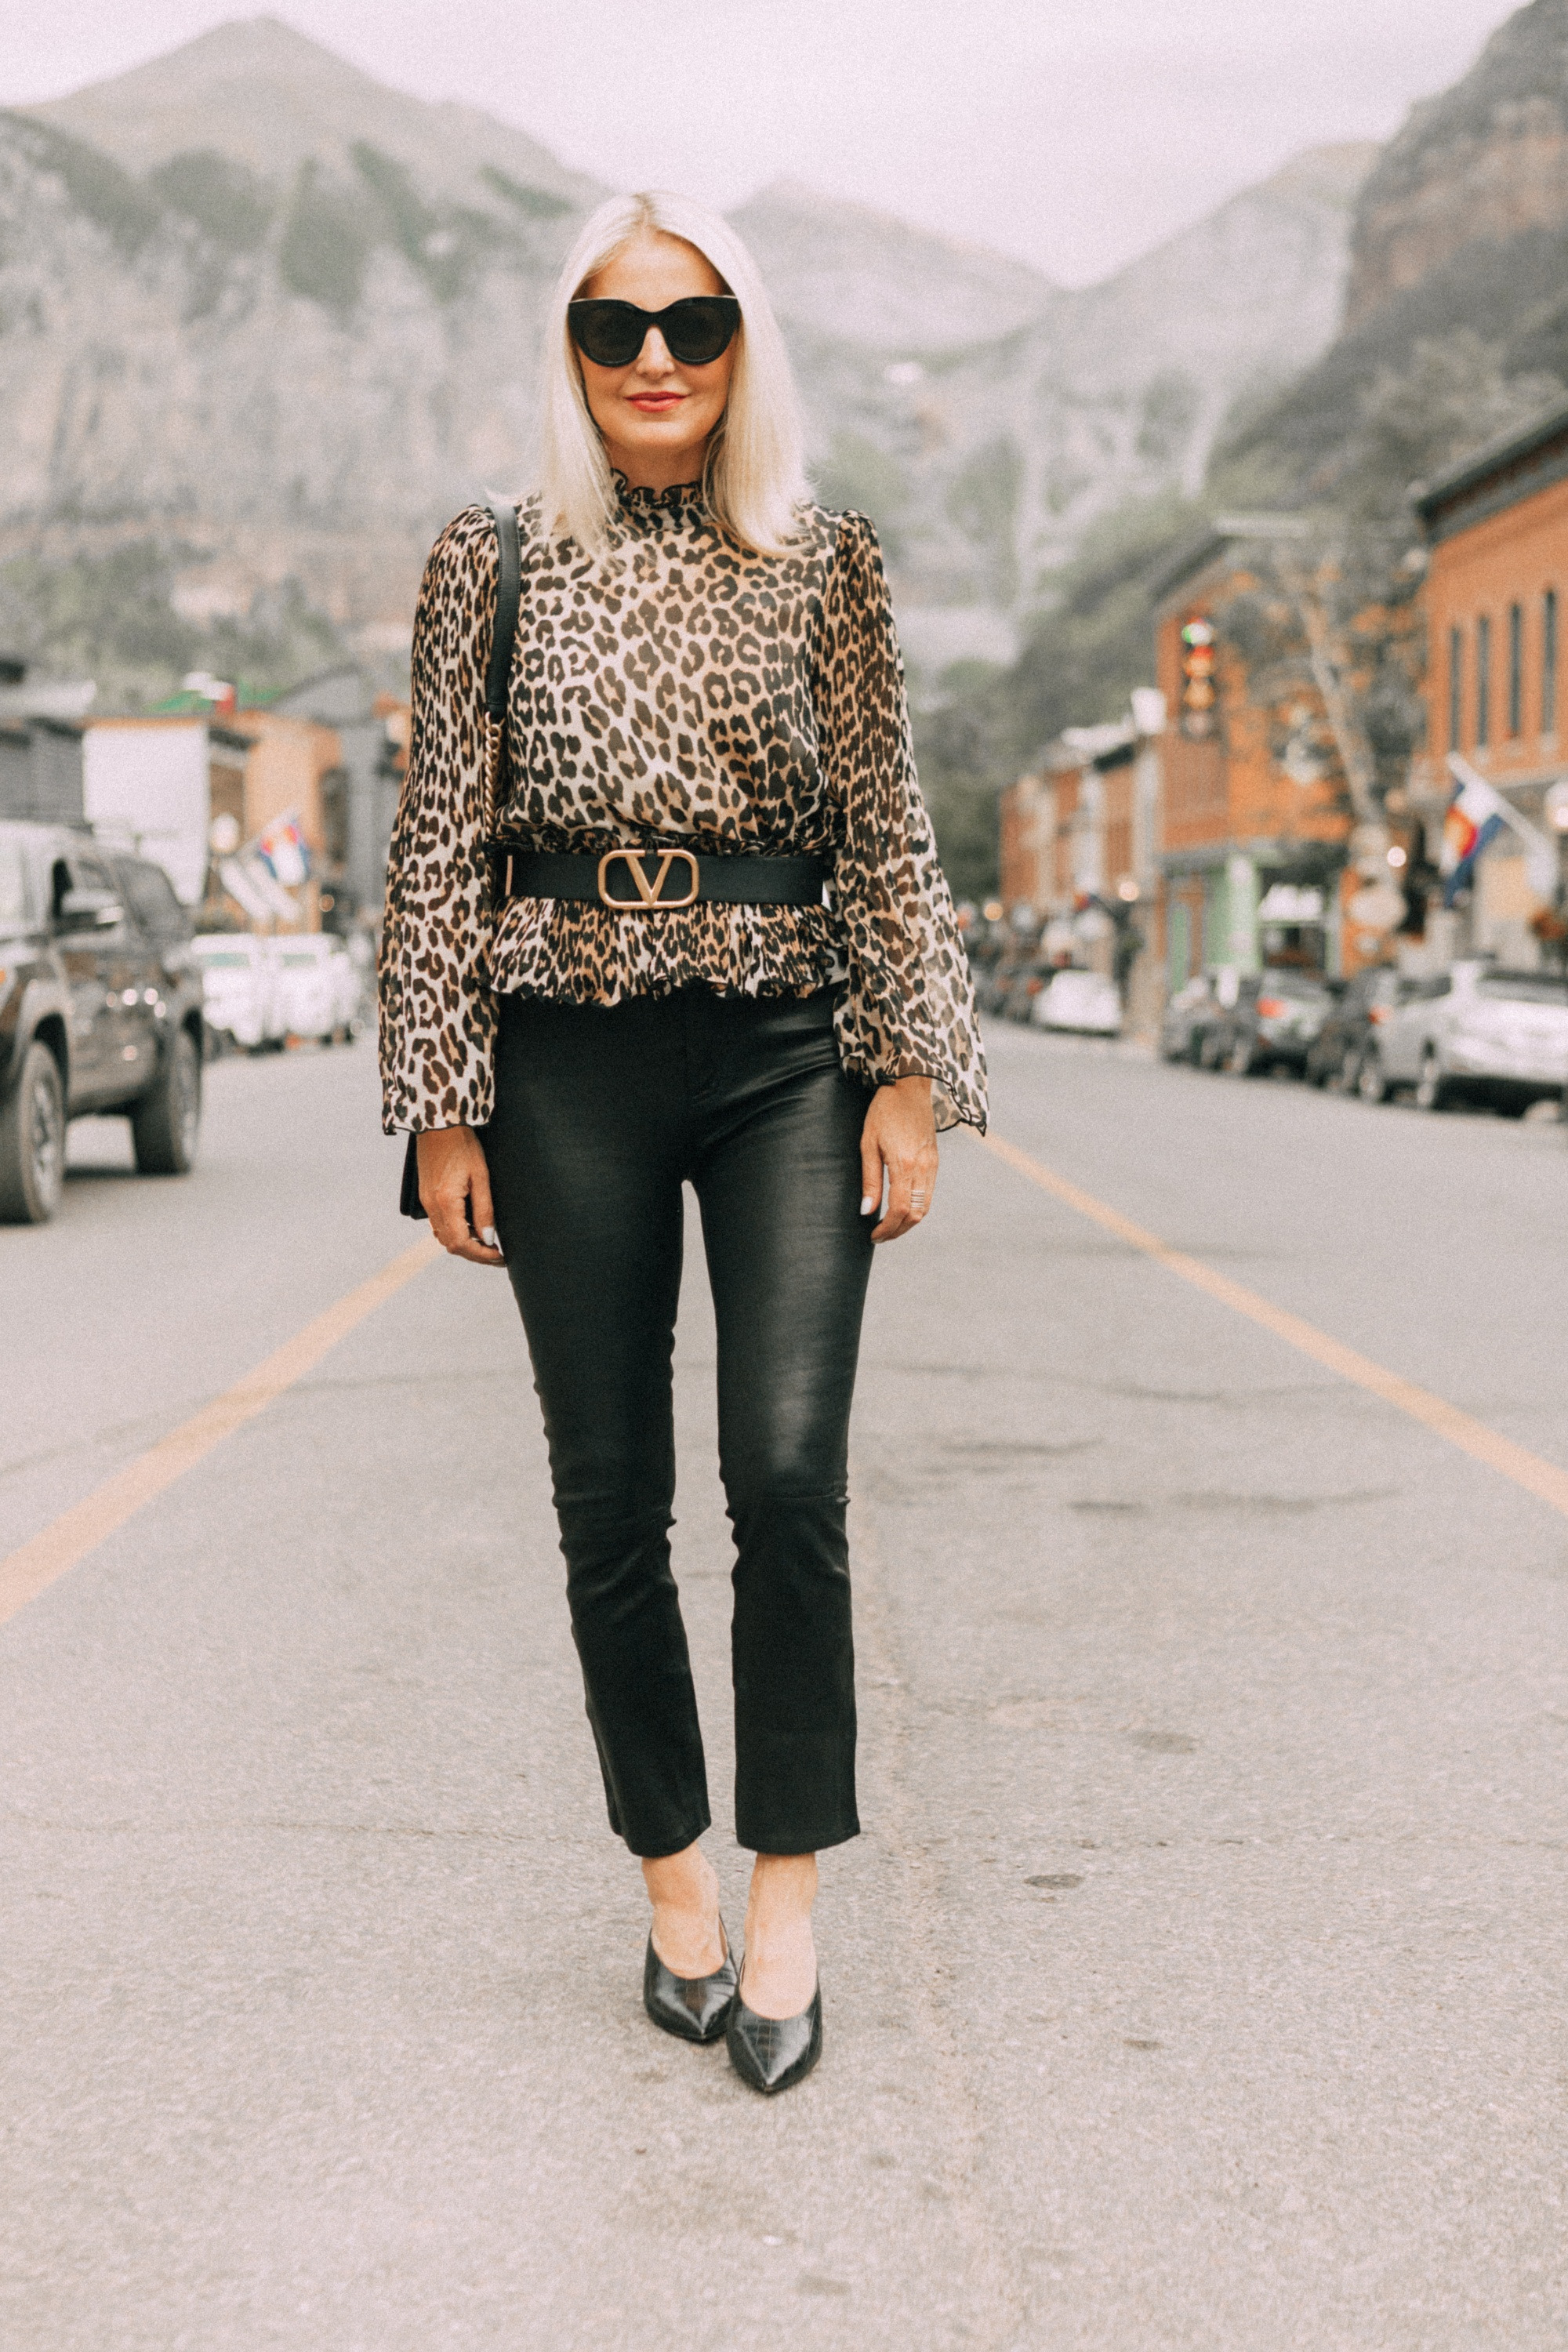 high neck blouse in leopard print by Ganni on fashion blogger erin busbee in Telluride colorado